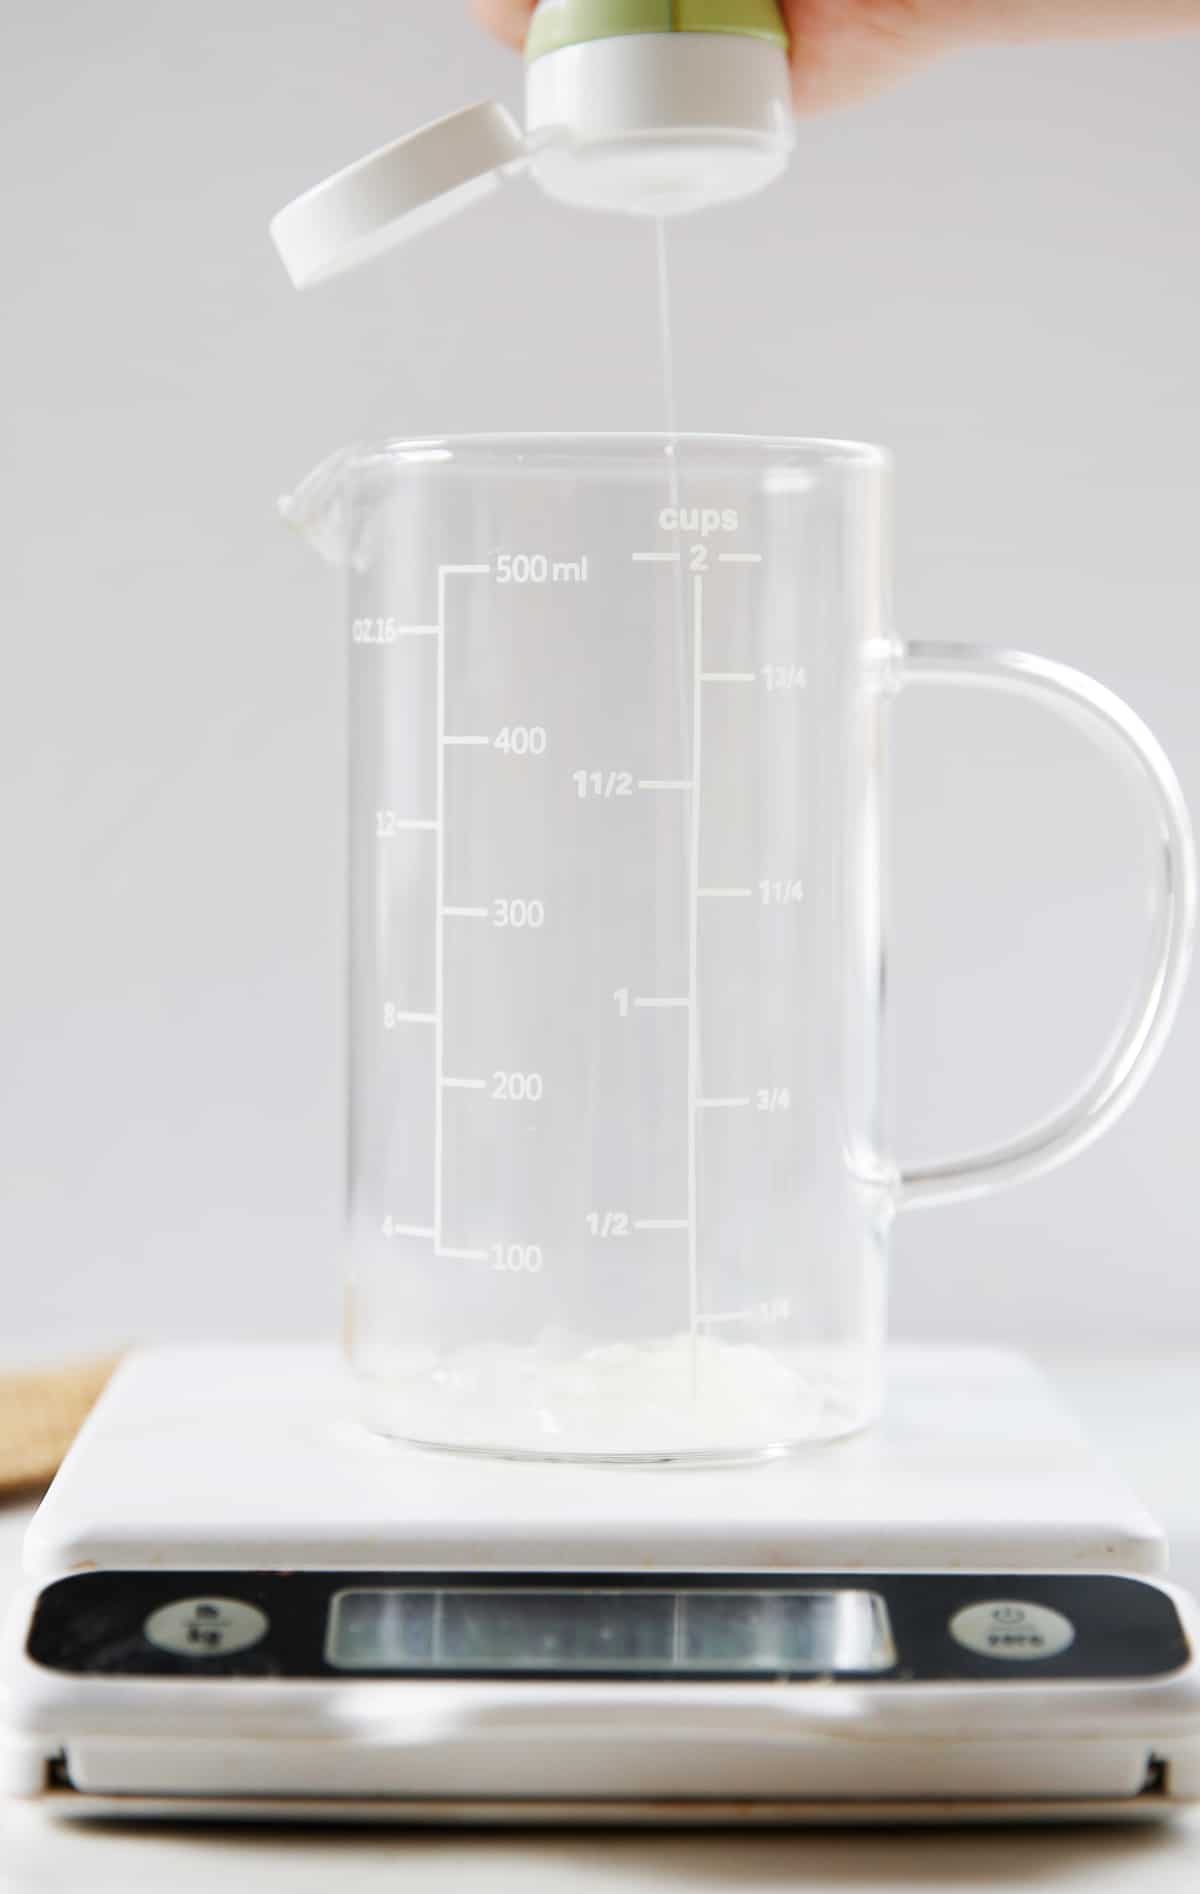 Squirting aloe vera gel into measuring cup.